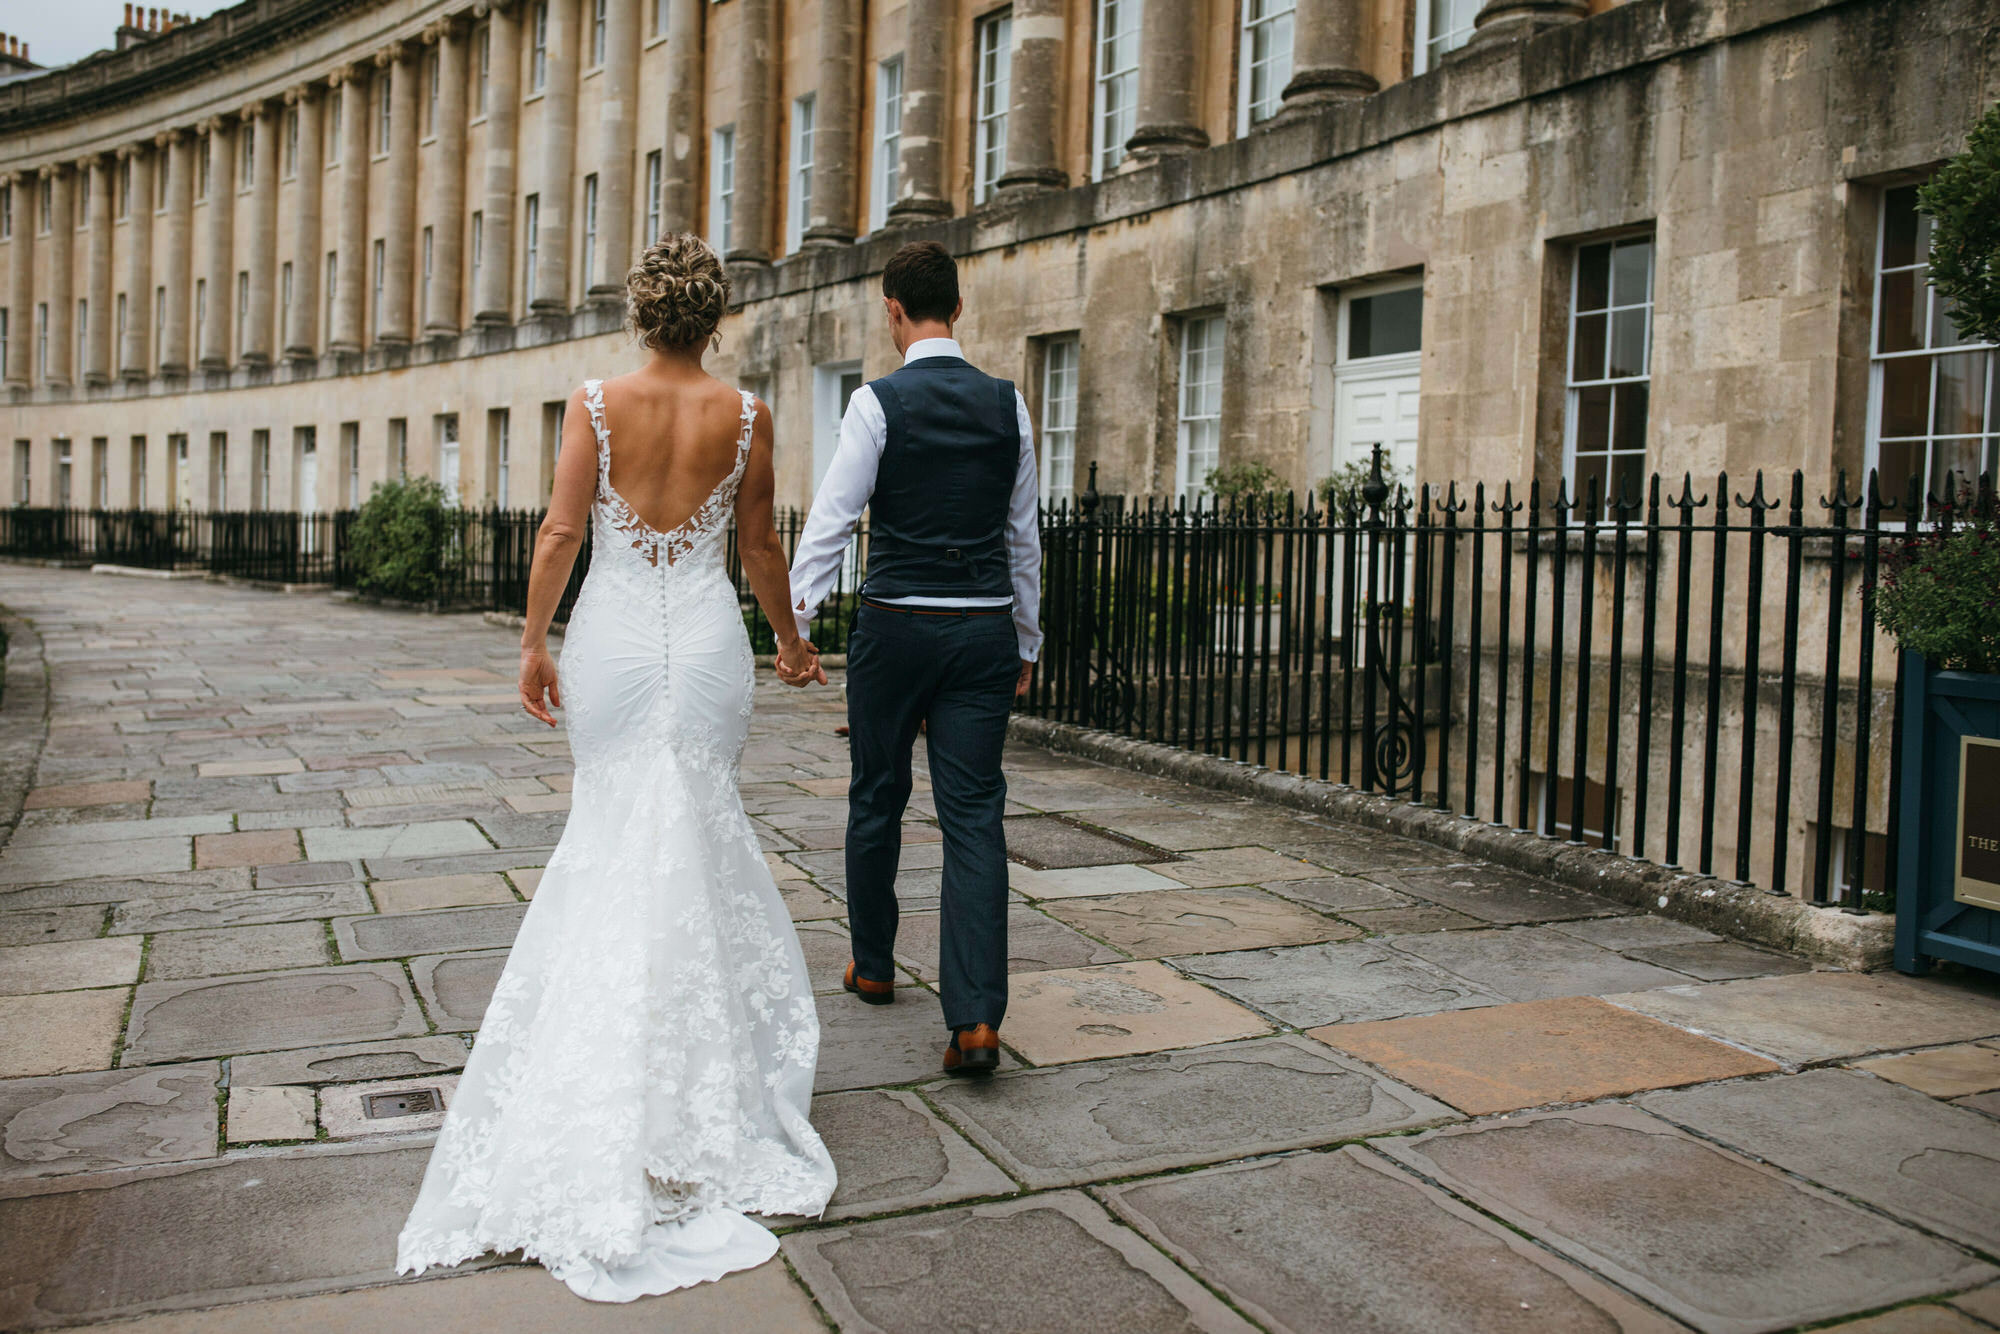 Royal crescent Bride and Groom